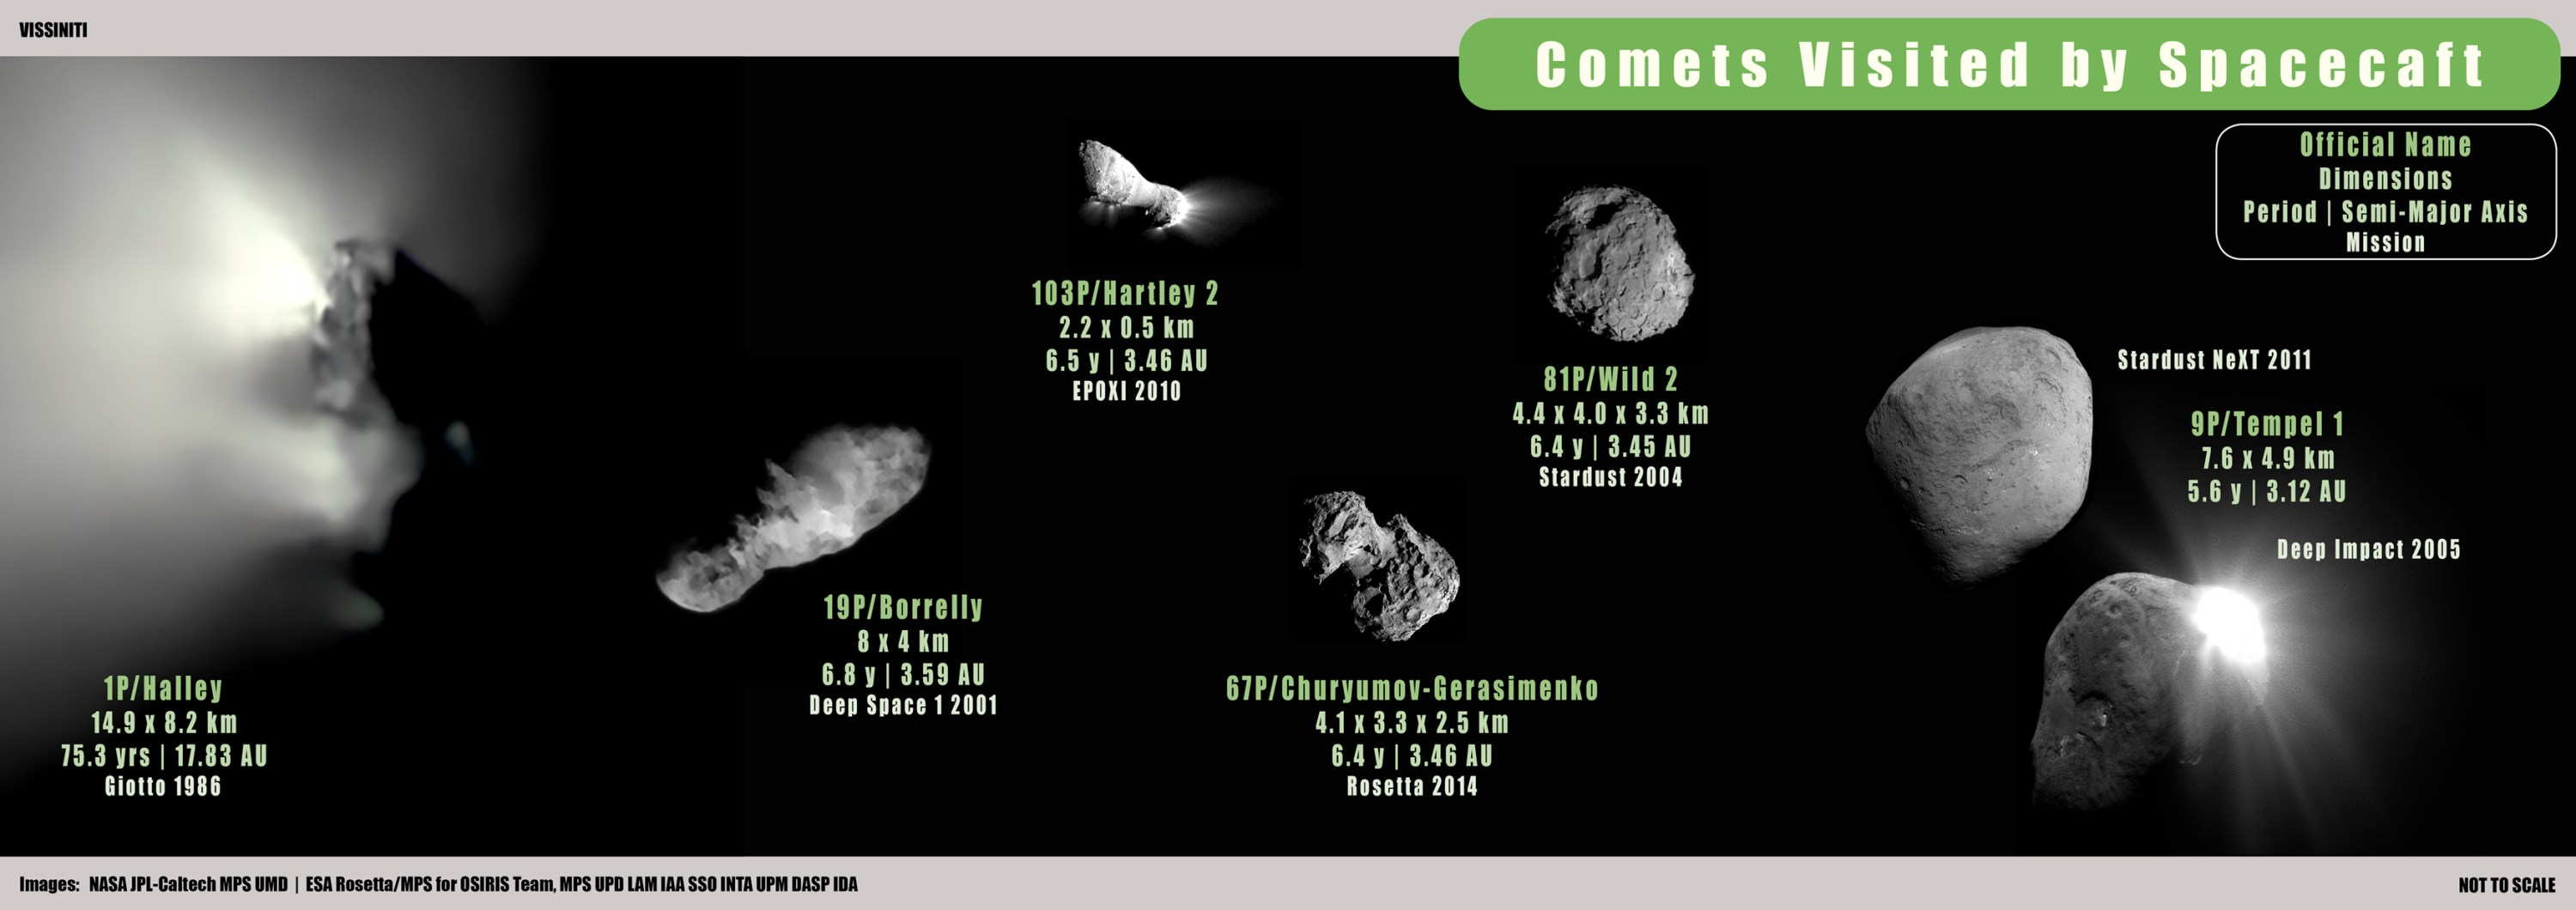 Comets Visited by Spacecraft (as at 2021)